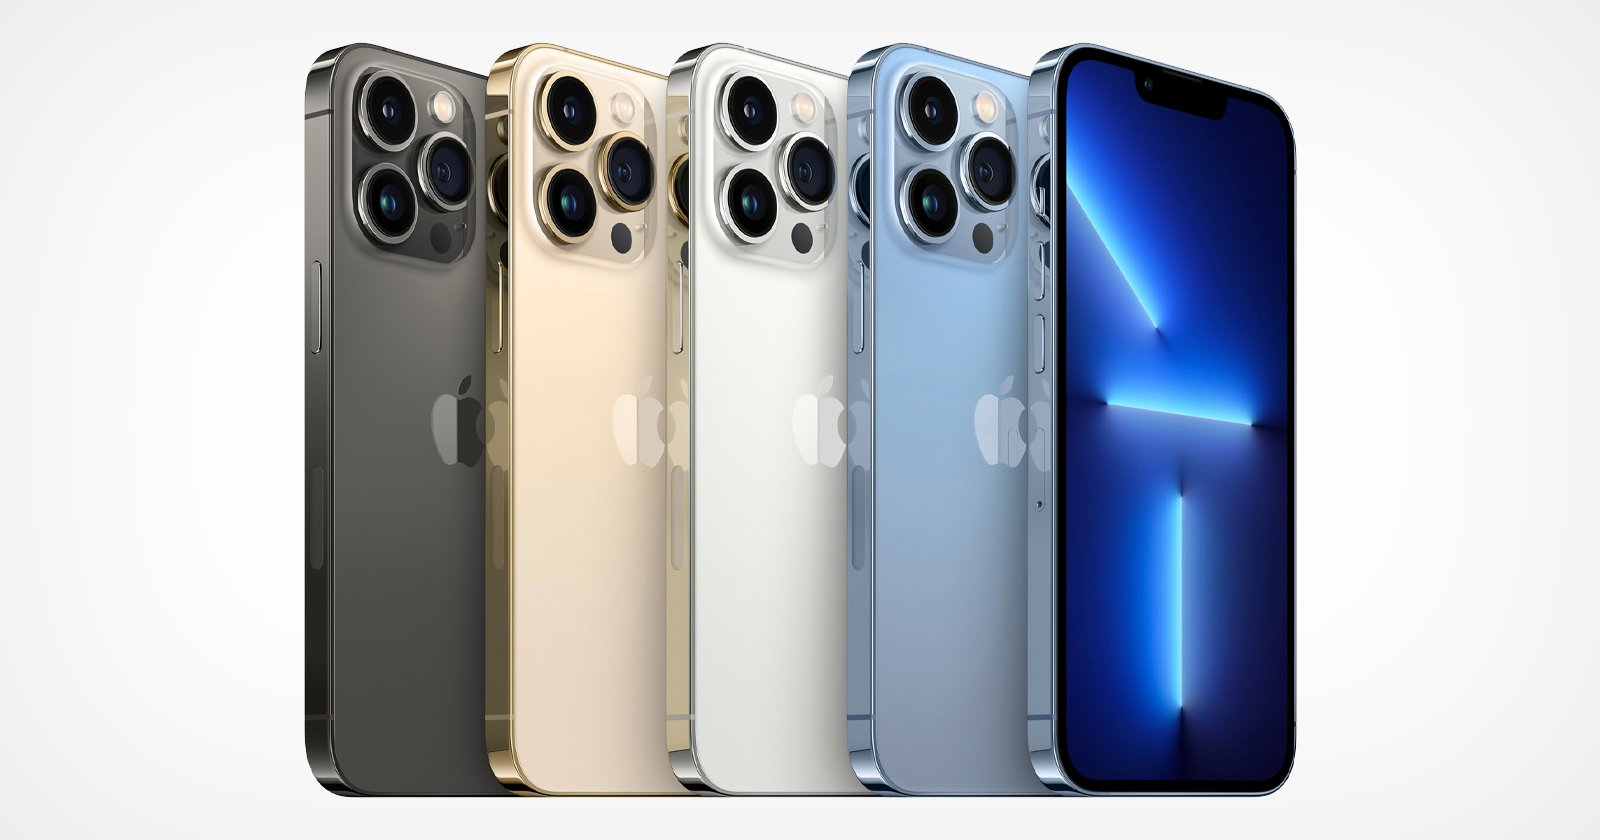 Apple's New iPhone 13 Pro and 13 Pro Max Boast Improved Cameras